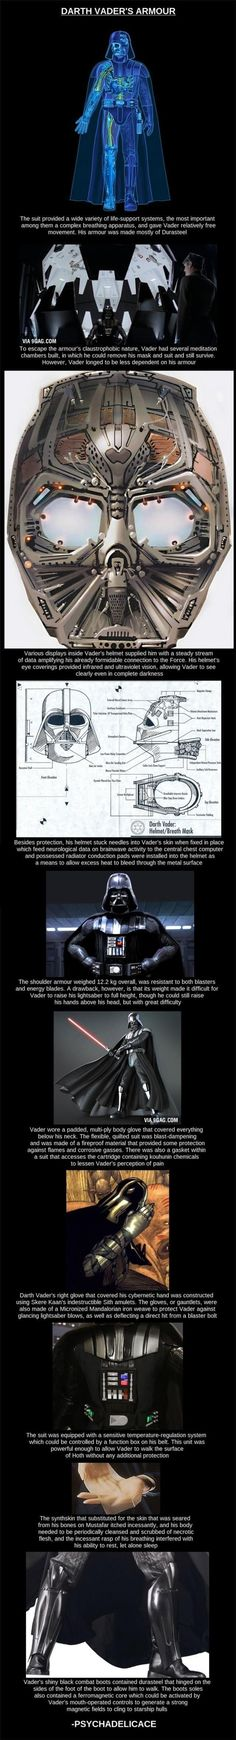 The Secret Behind Vader's Suit